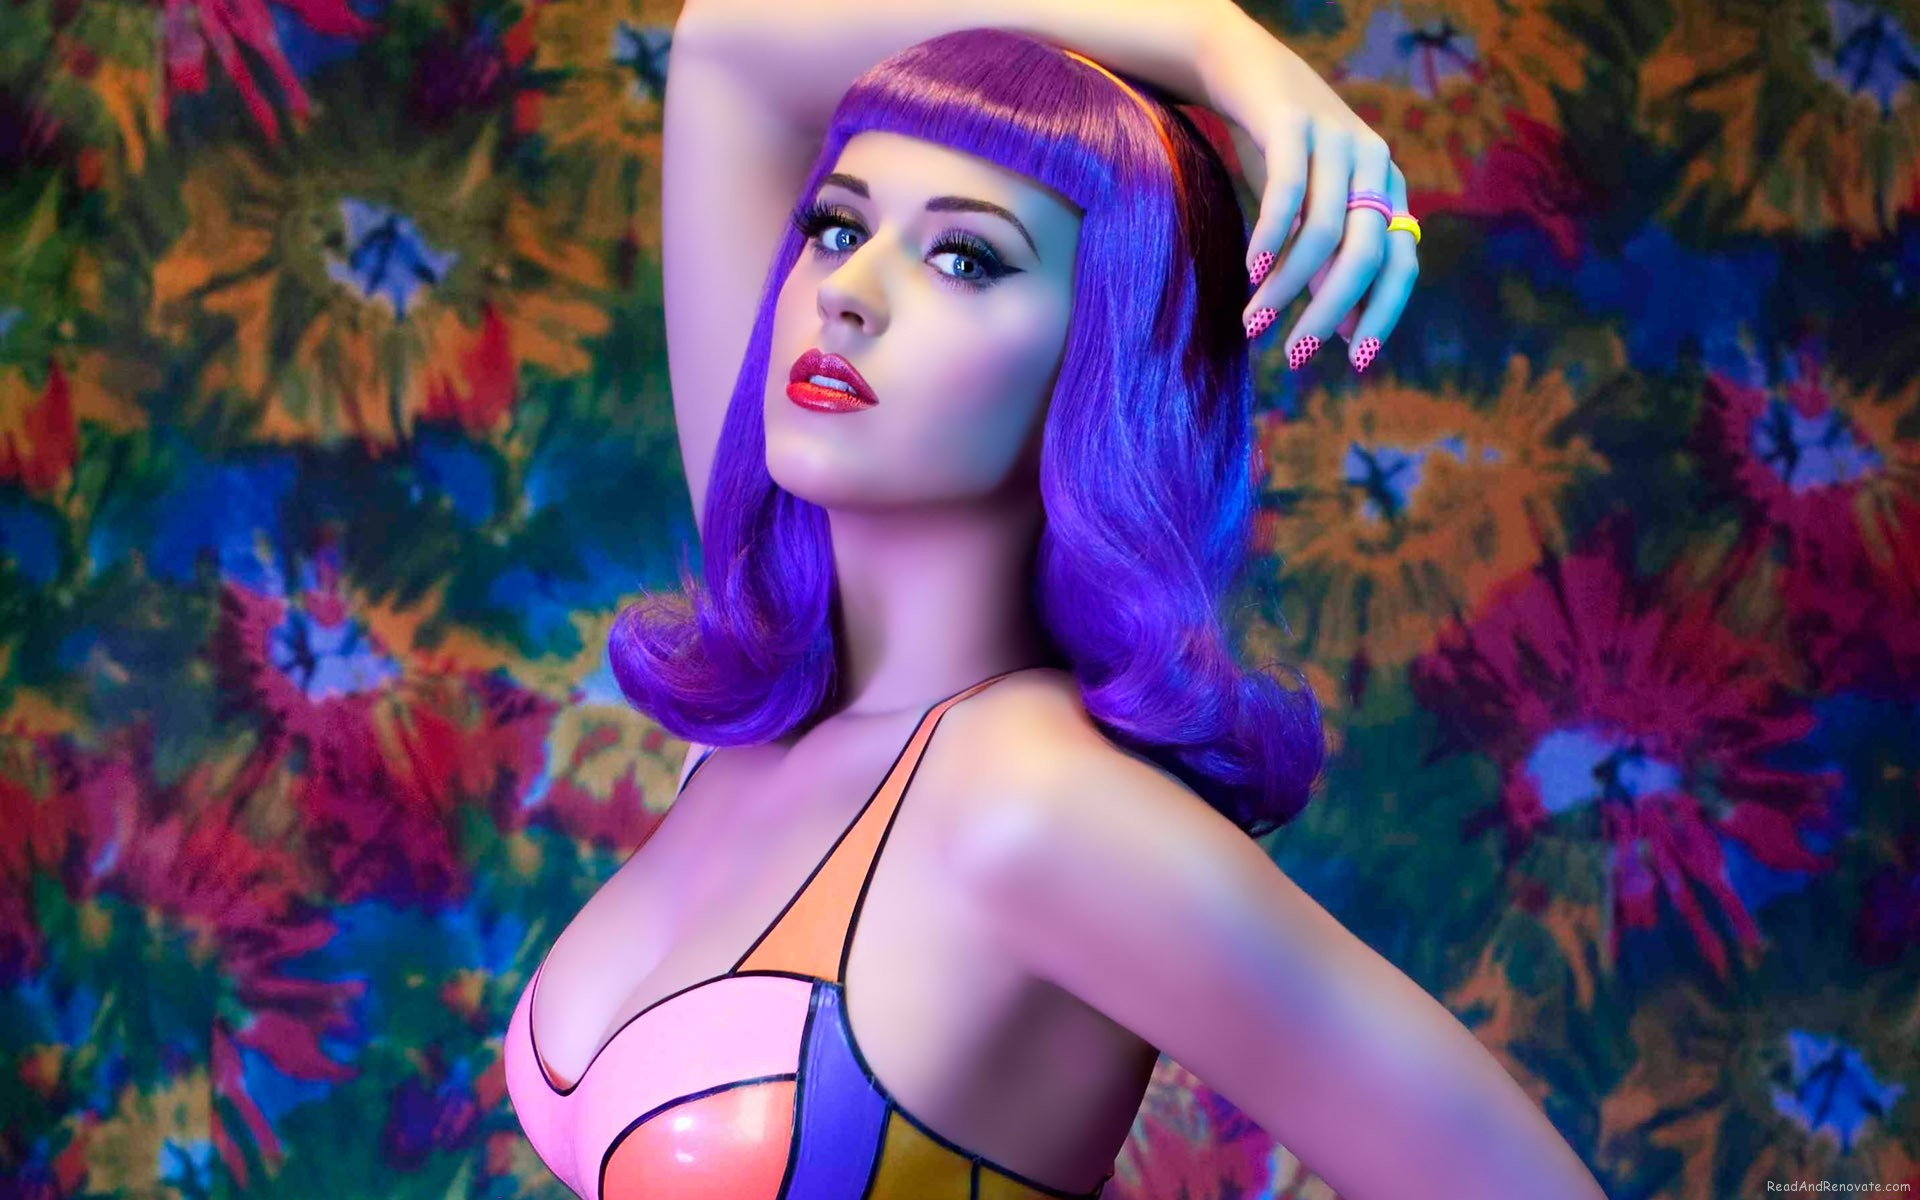 Katy Perry Hd Wallpapers: Katy Perry Wallpaper HD